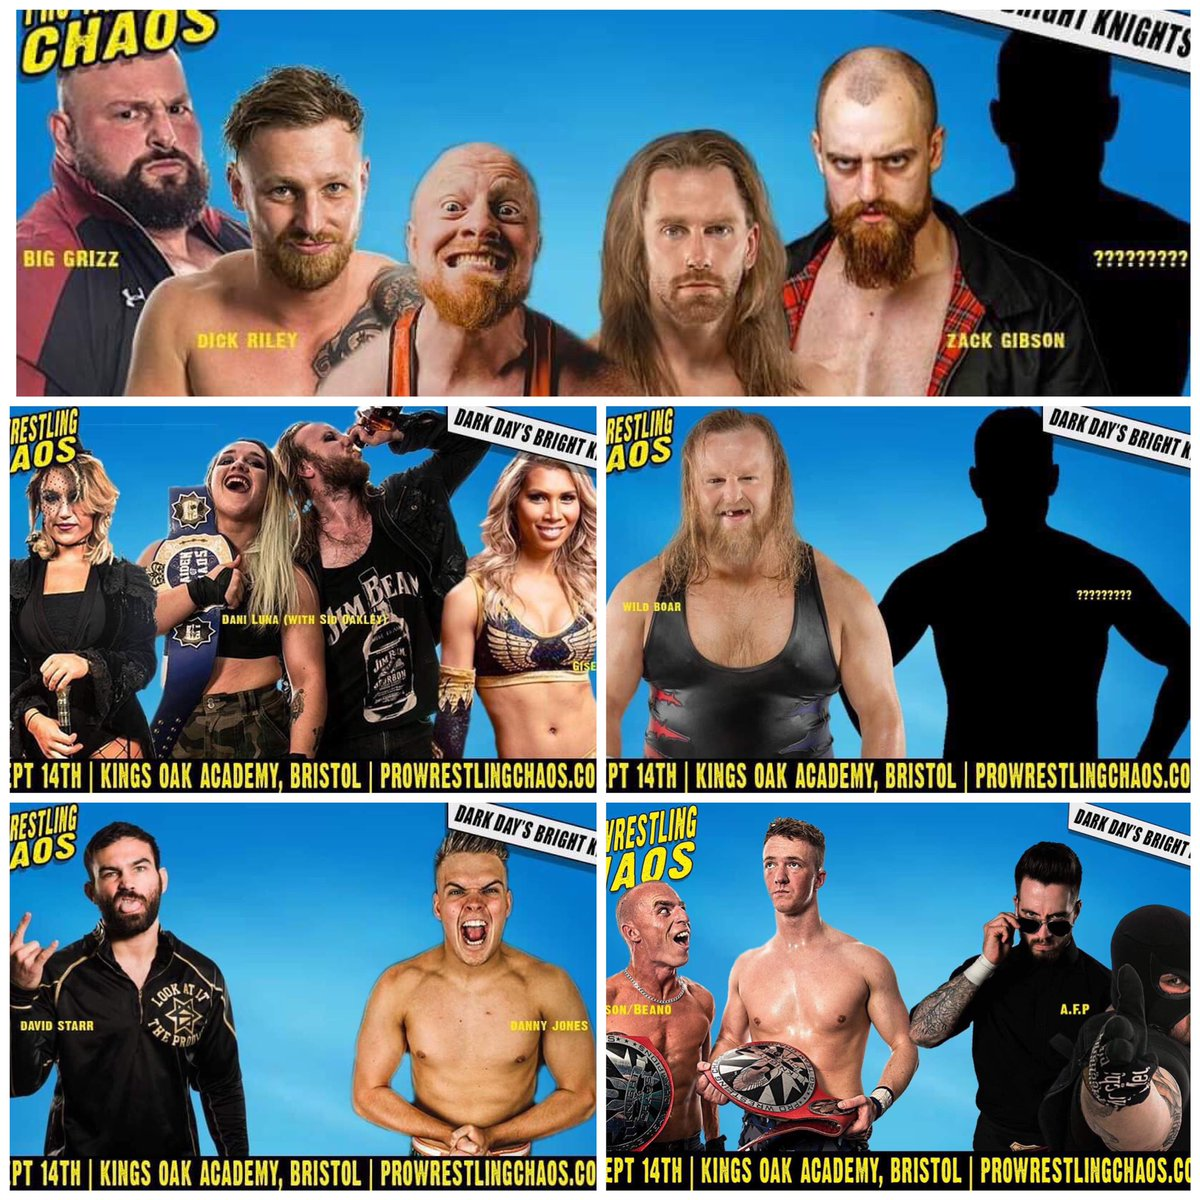 Super fun card for @chaos_wrestling next month!